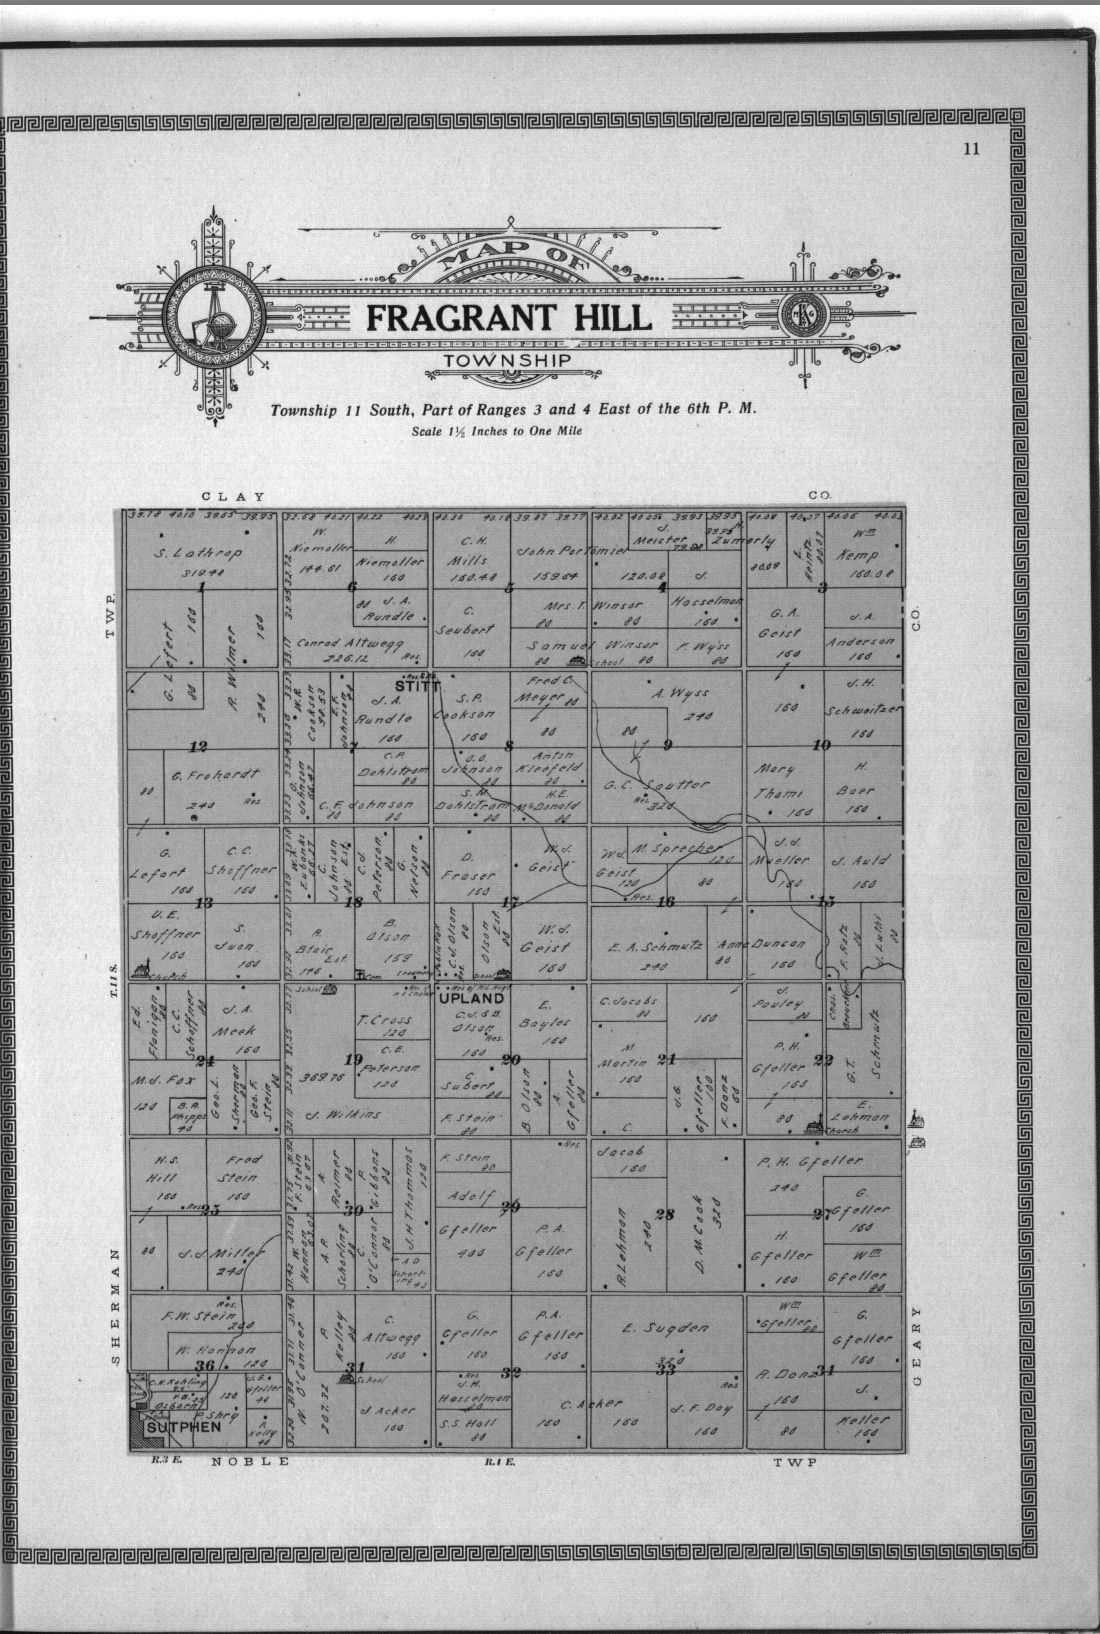 Plat book and complete survey of Dickinson County, Kansas - 11